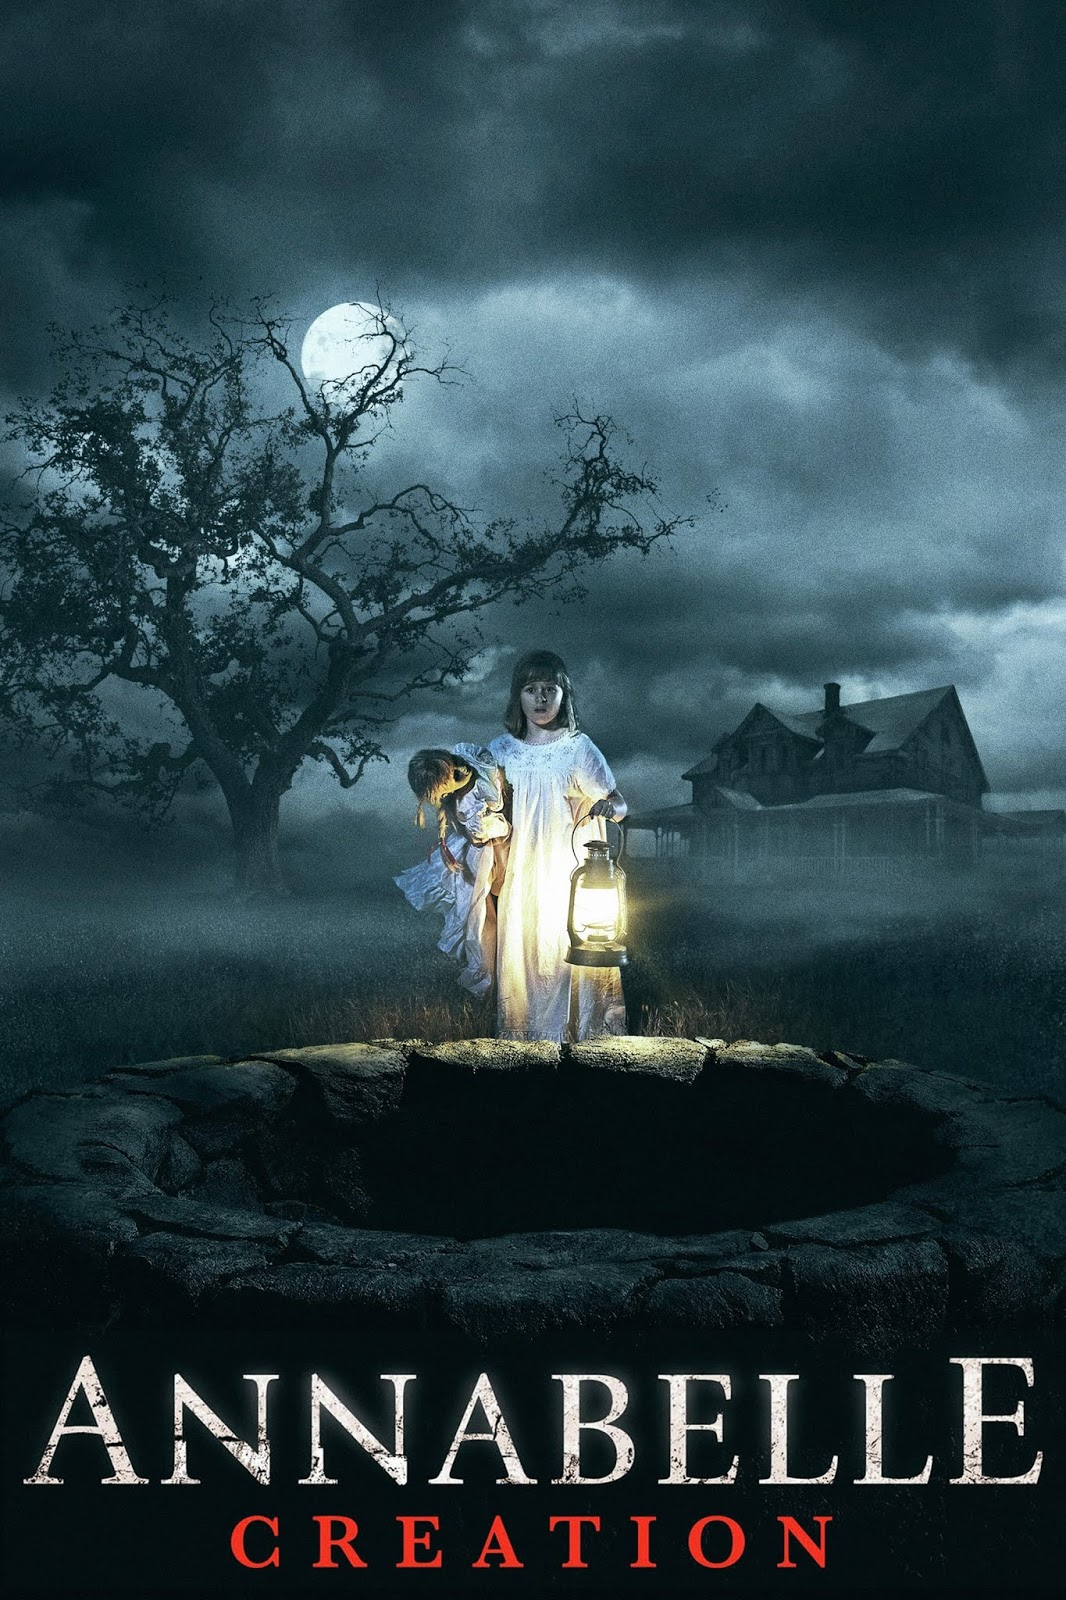 ANNABELLE CREATION (2017) MOVIE TAMIL DUBBED HD